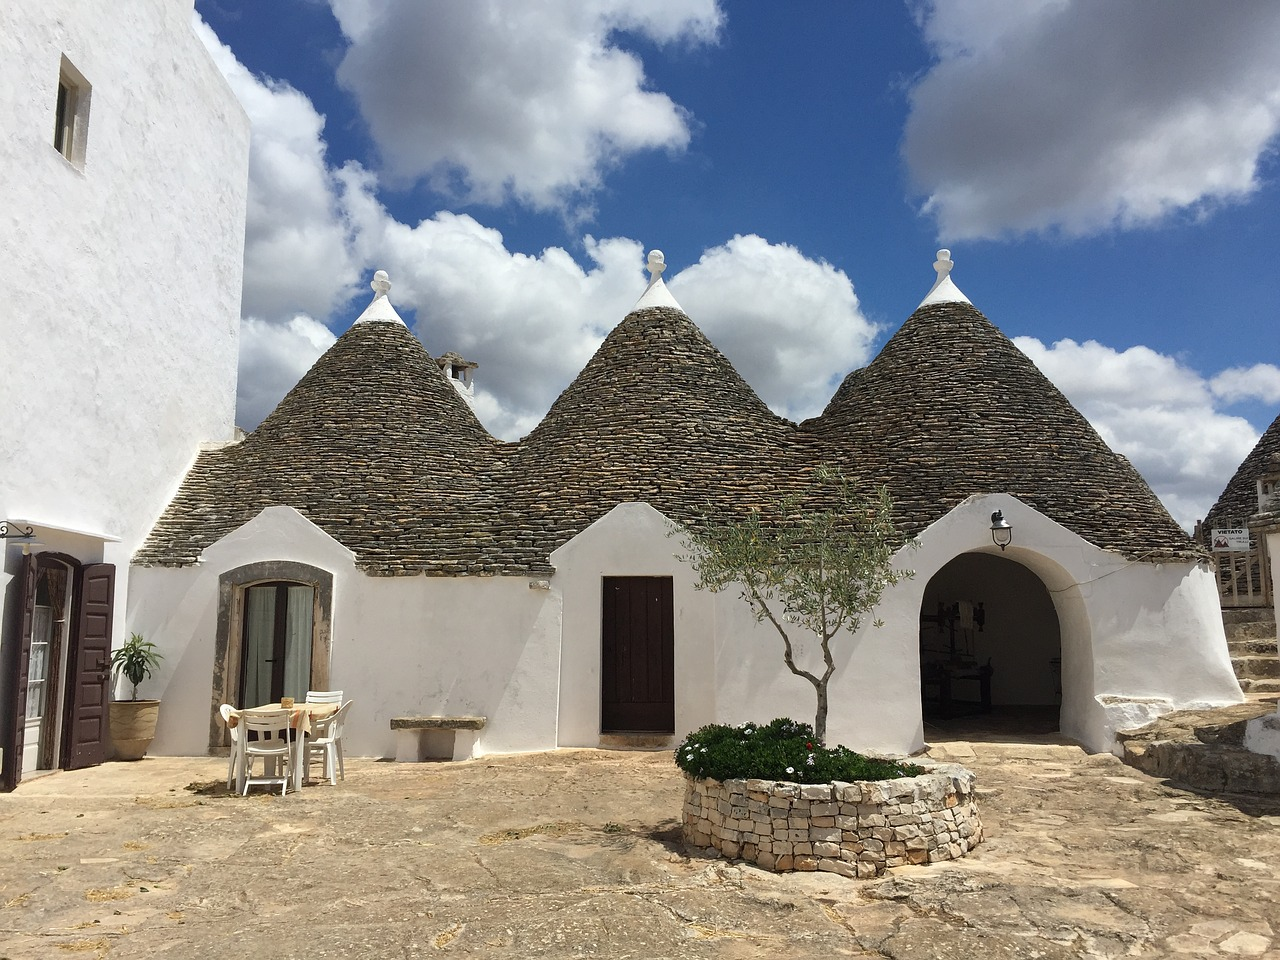 Three trullo in Puglia